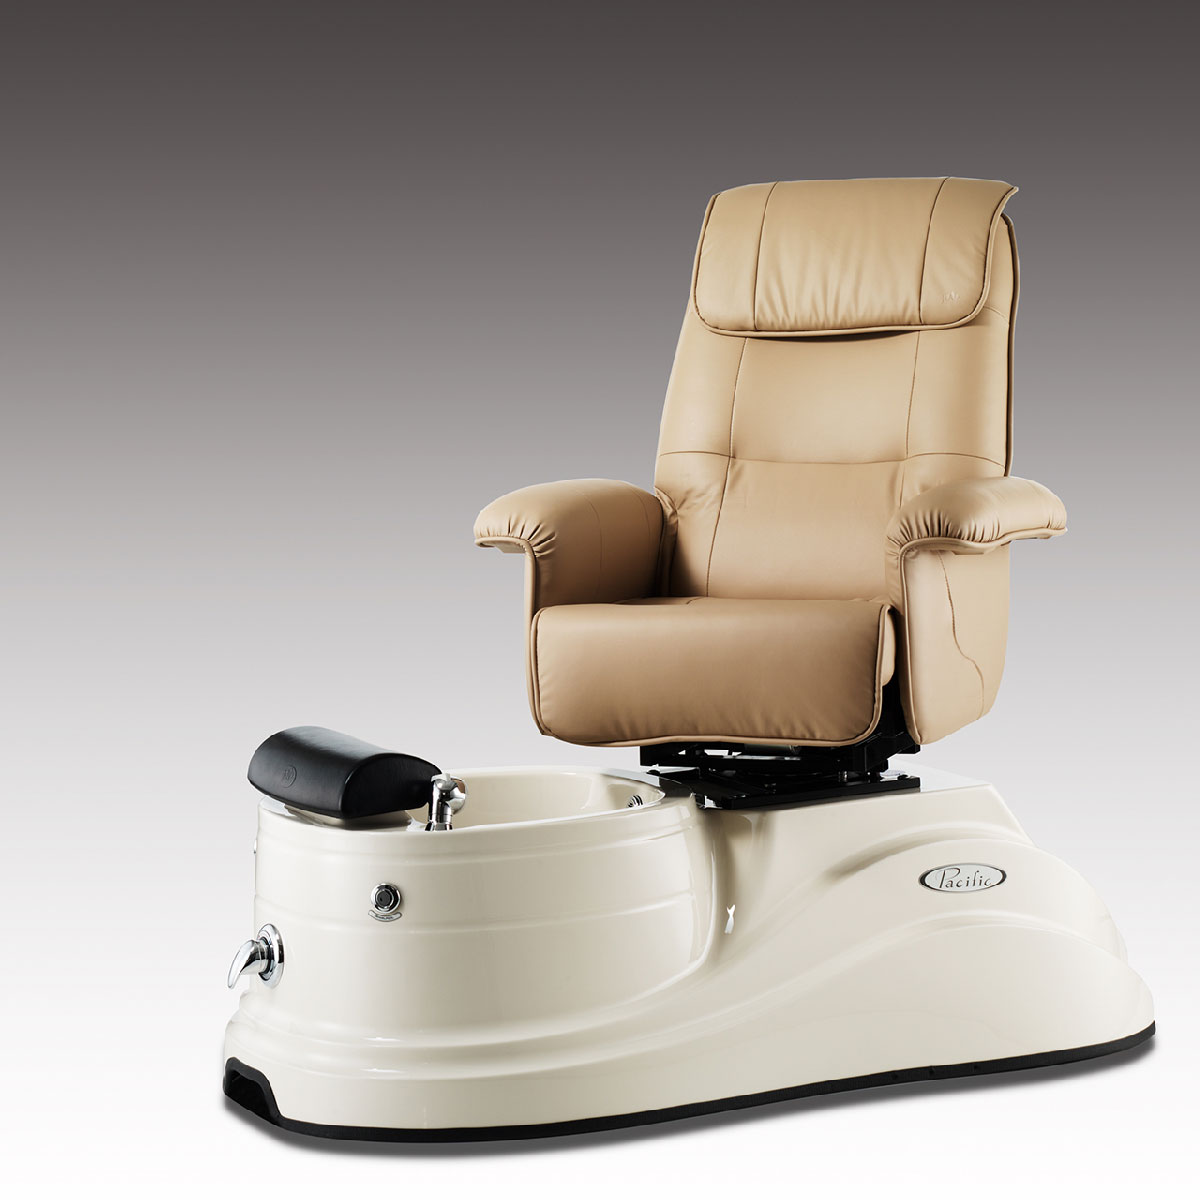 Pacific DS Day Spa Pedicure Spa Chair alternative product image 4